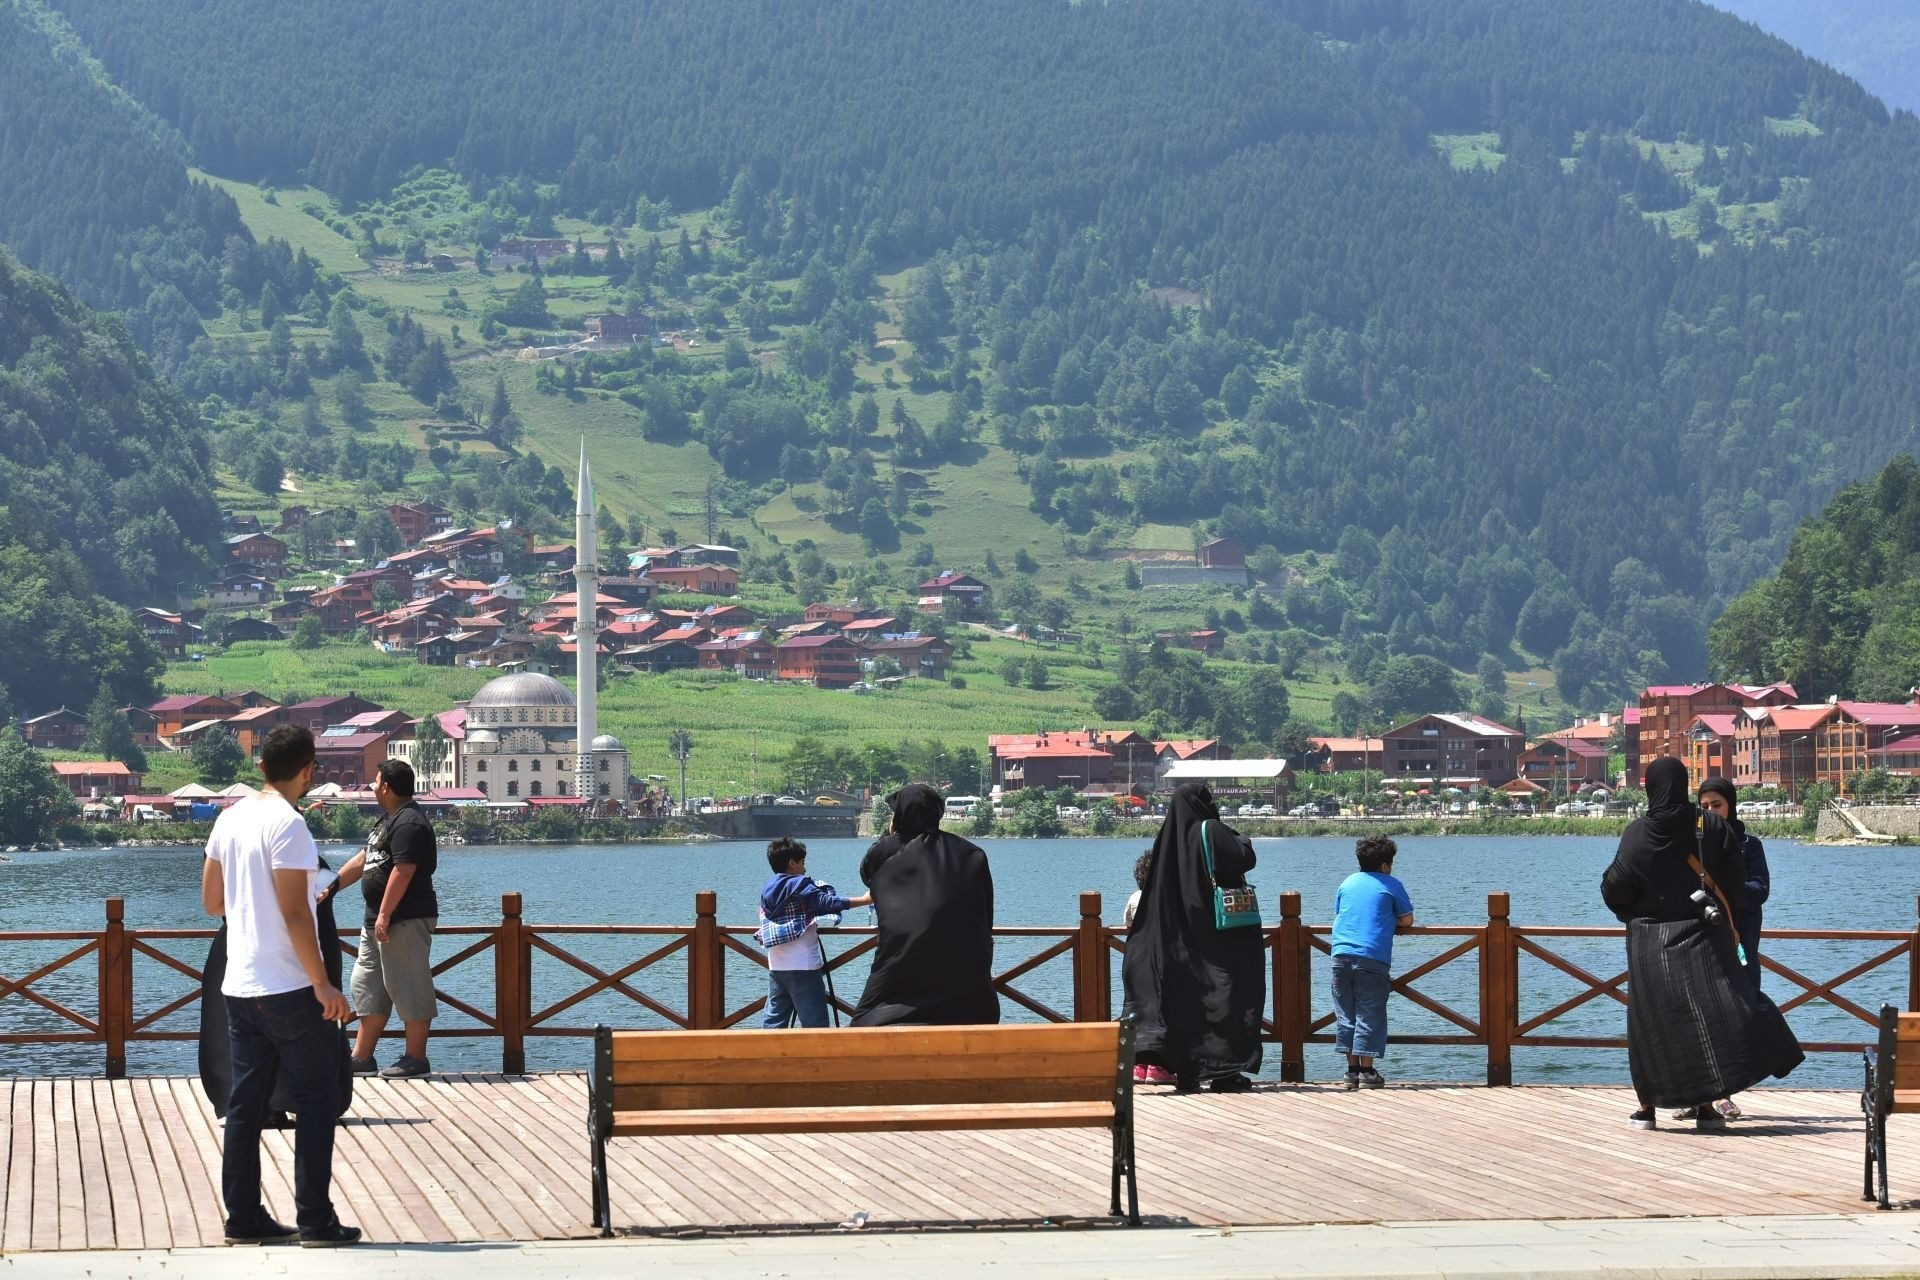 Uzungu00f6l in Trabzon loated in the Turkeyu2019s Black Sea region is popular with tourists from the Gulf.